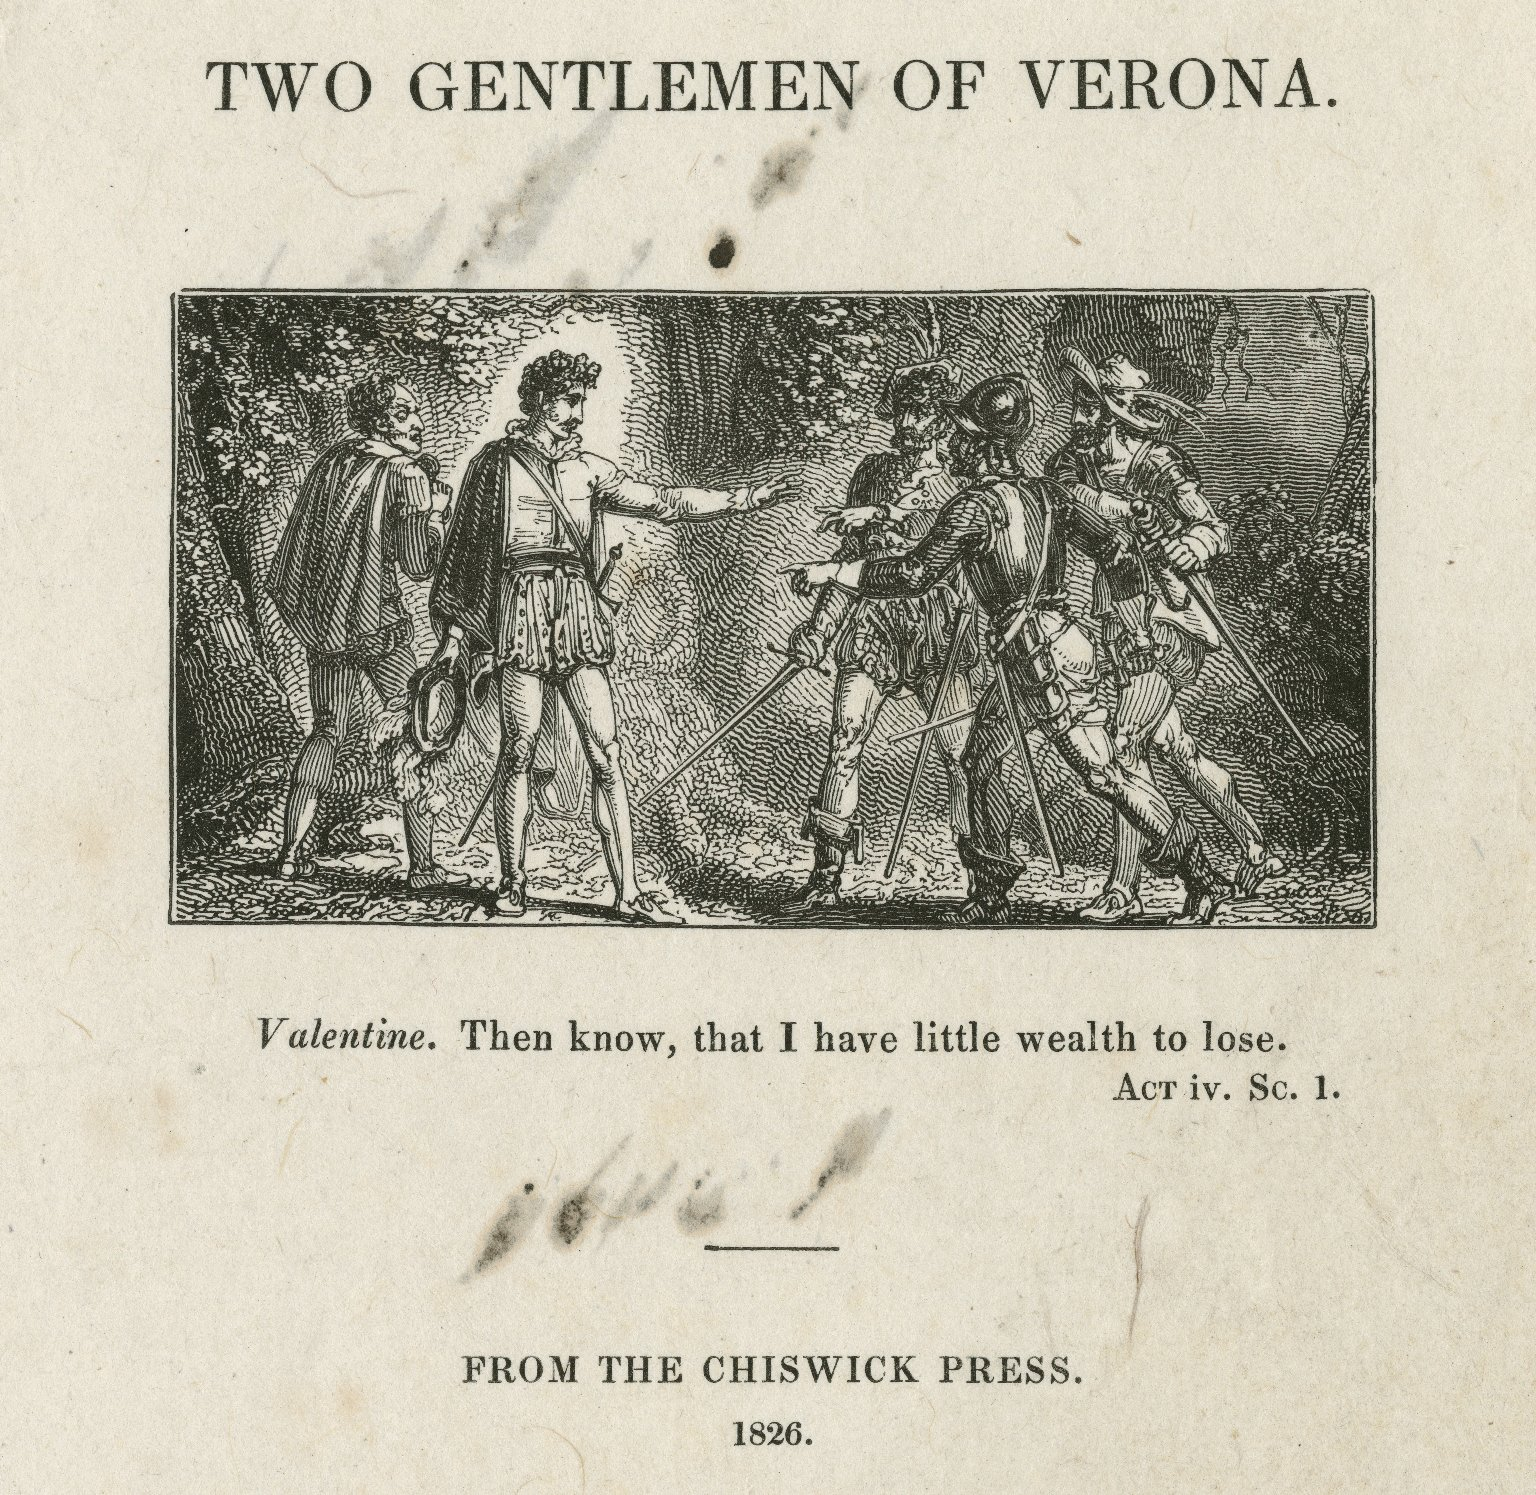 Two gentlemen of Verona, Valentine: Then know, that I have little wealth to lose ; act iv, sc. 1 [graphic] / [John Thompson].